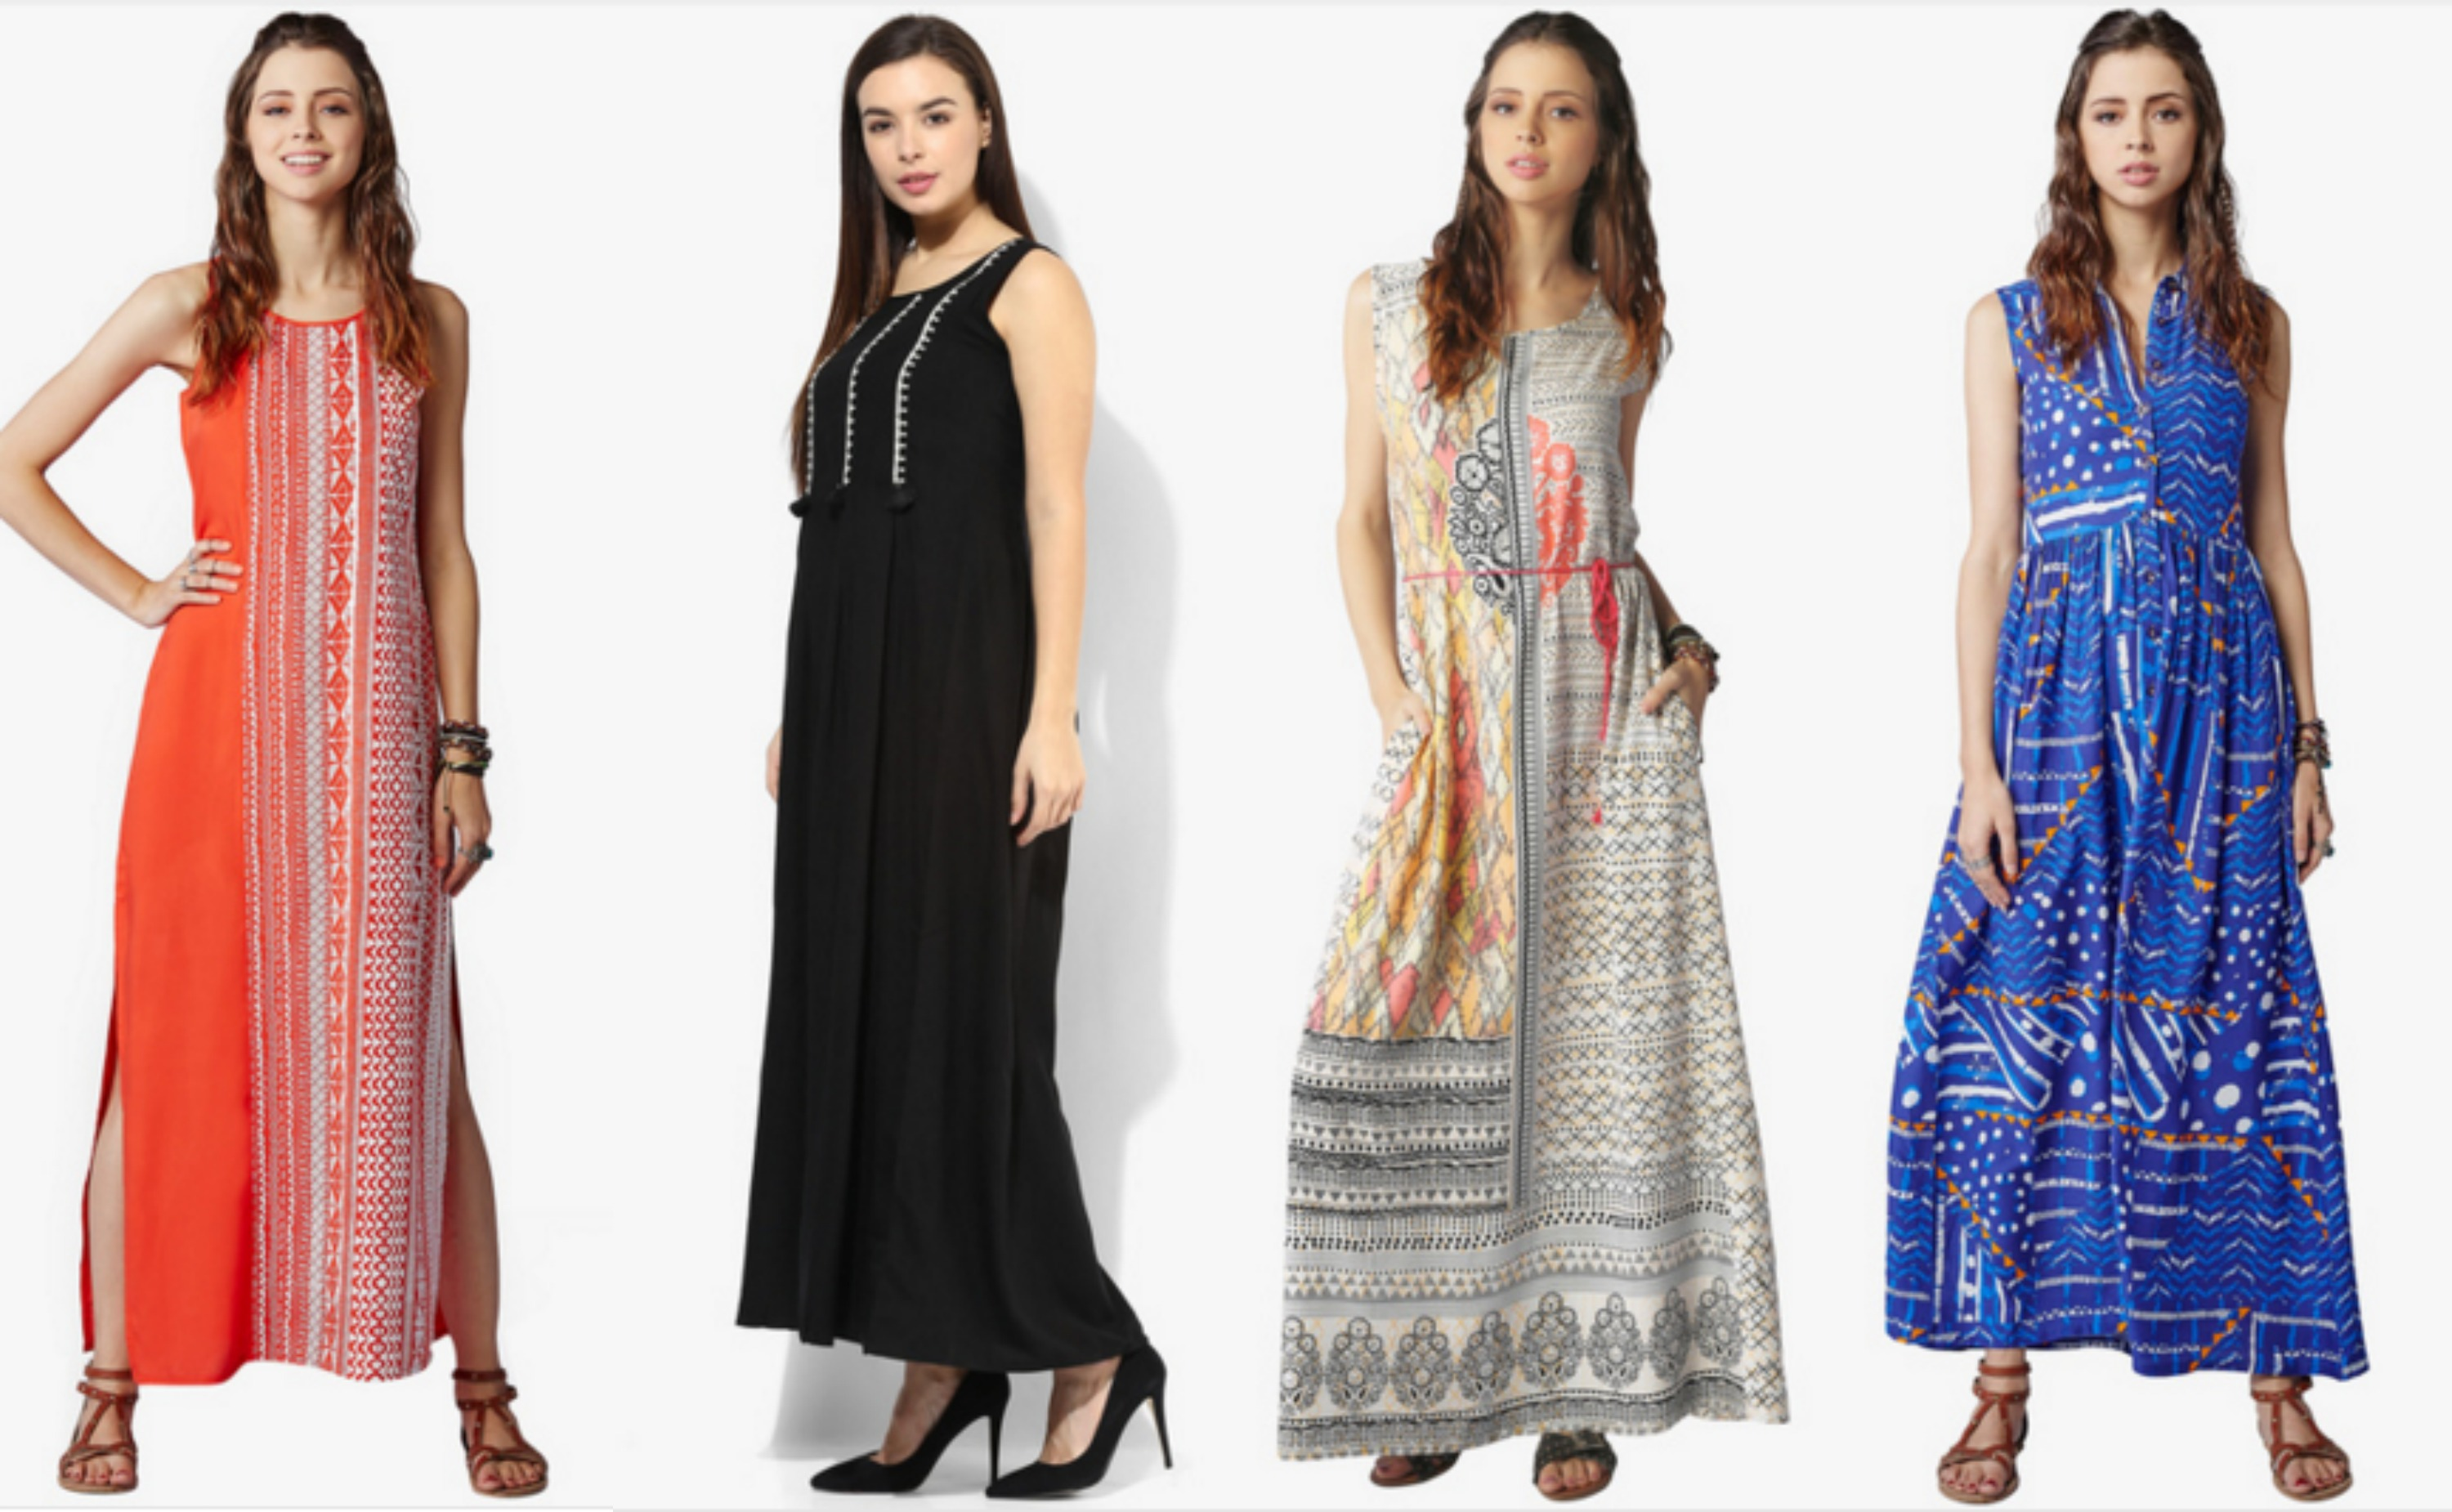 Global Desi Spring/Summer Collection, 2016 Review|Maxi Dresses| cherryontopblog.com